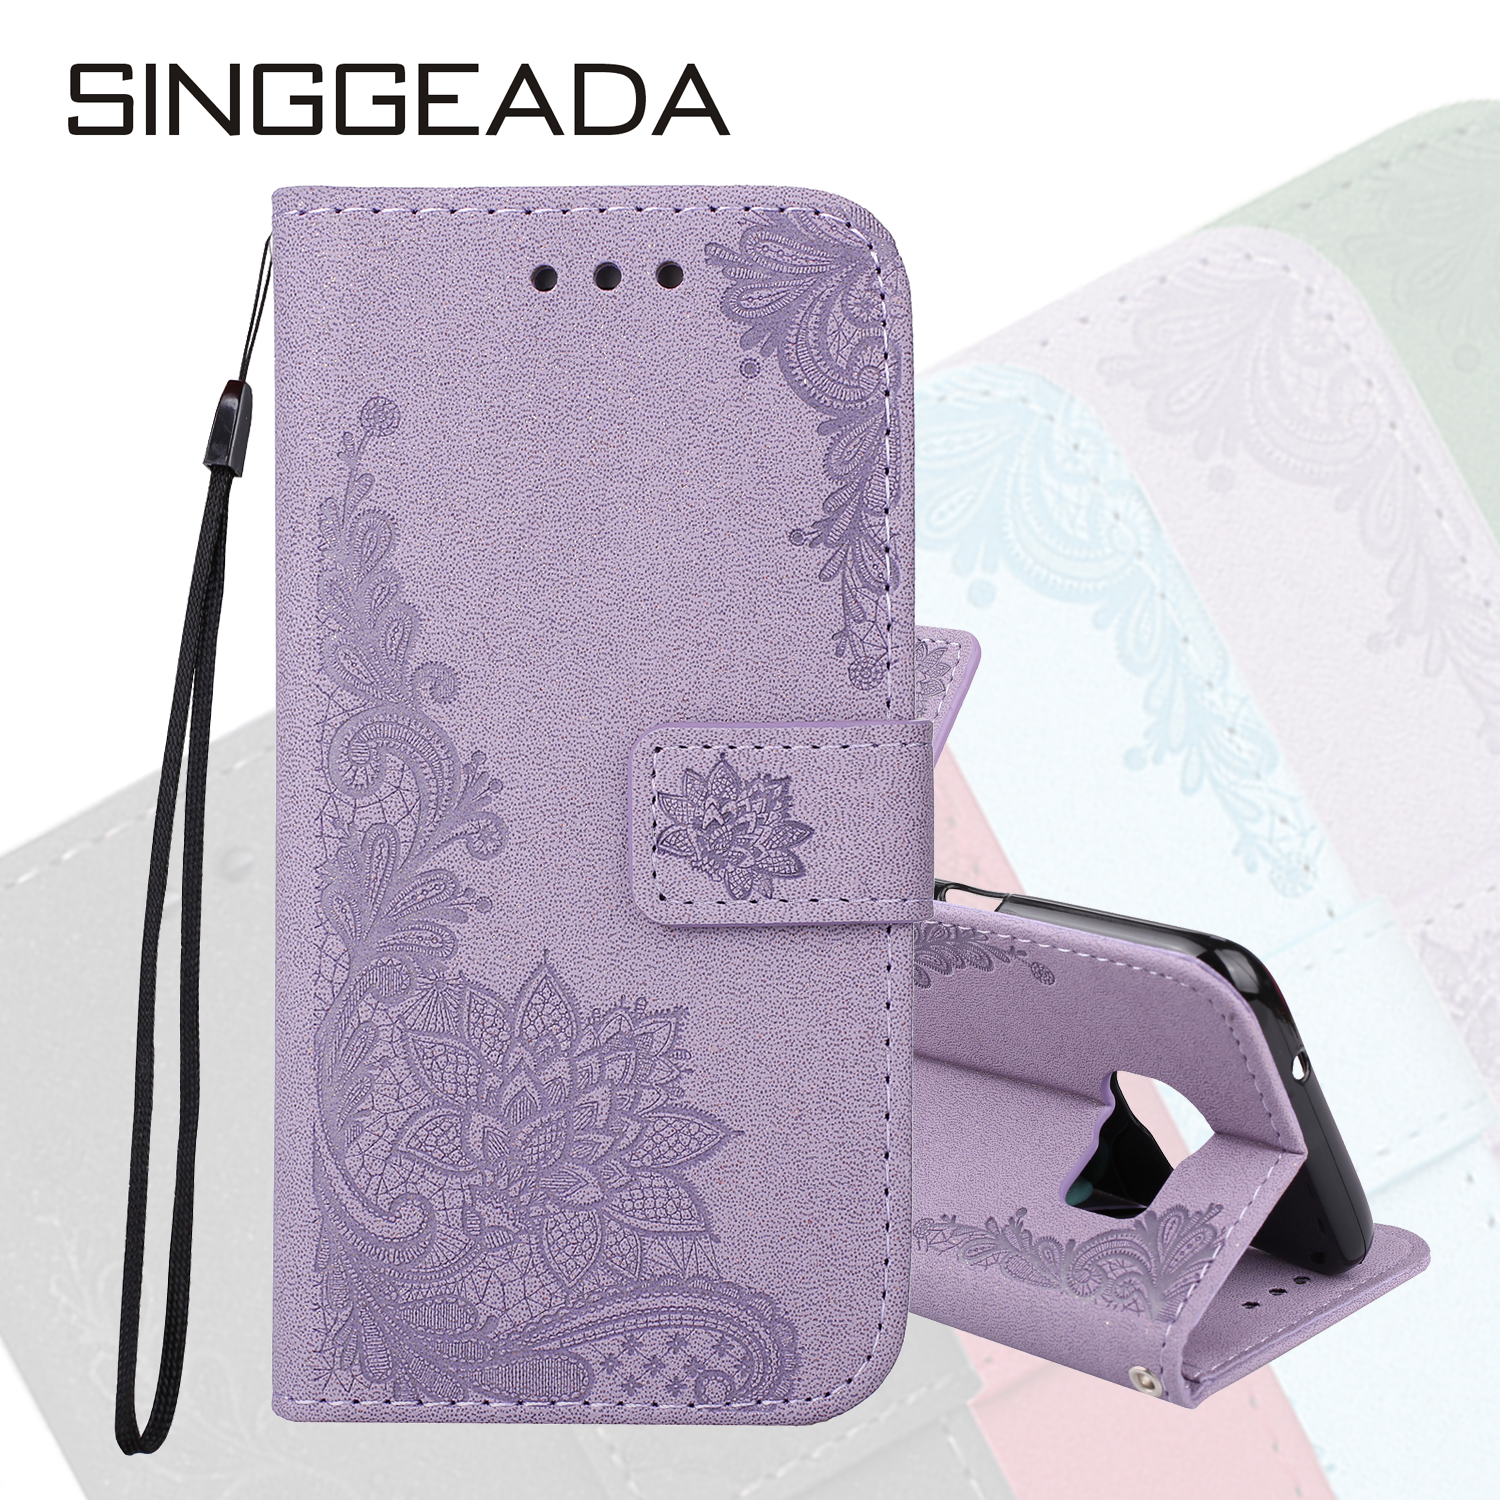 Pu leather case for samsung galaxy a7 2016 a710 peacock feather - Pu Leather Case For Samsung Galaxy A7 2016 A710 Peacock Feather Flip Case For Samsung